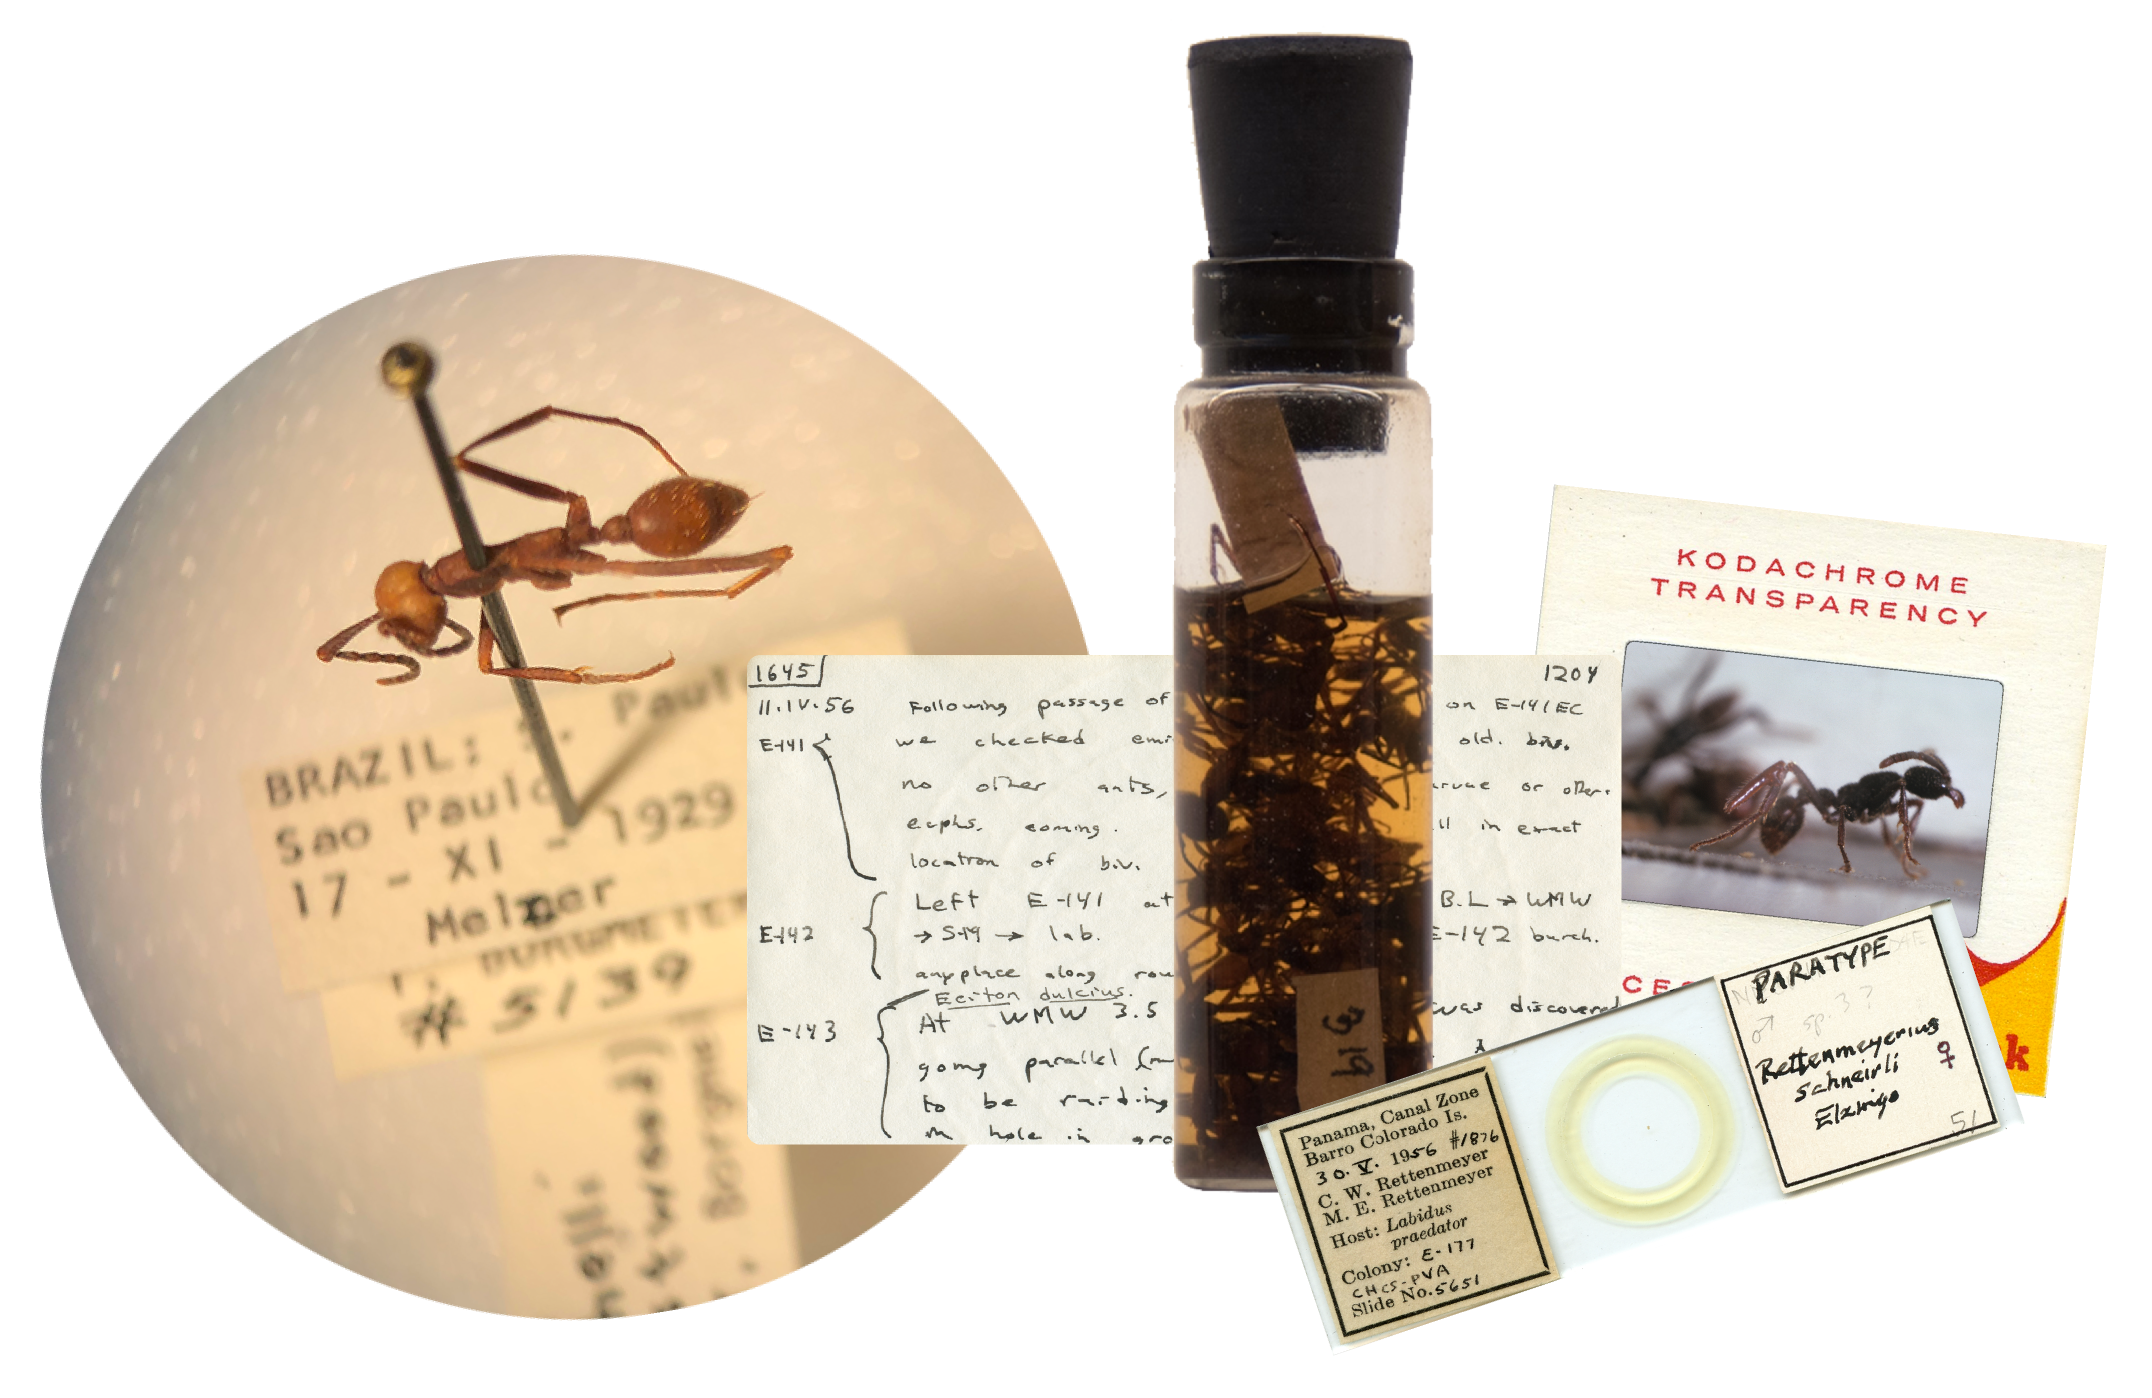 The Legacy of a Lifetime of Collecting: The Carl & Marian Rettenmeyer Story - A Traveling Interactive Natural History Exhibit